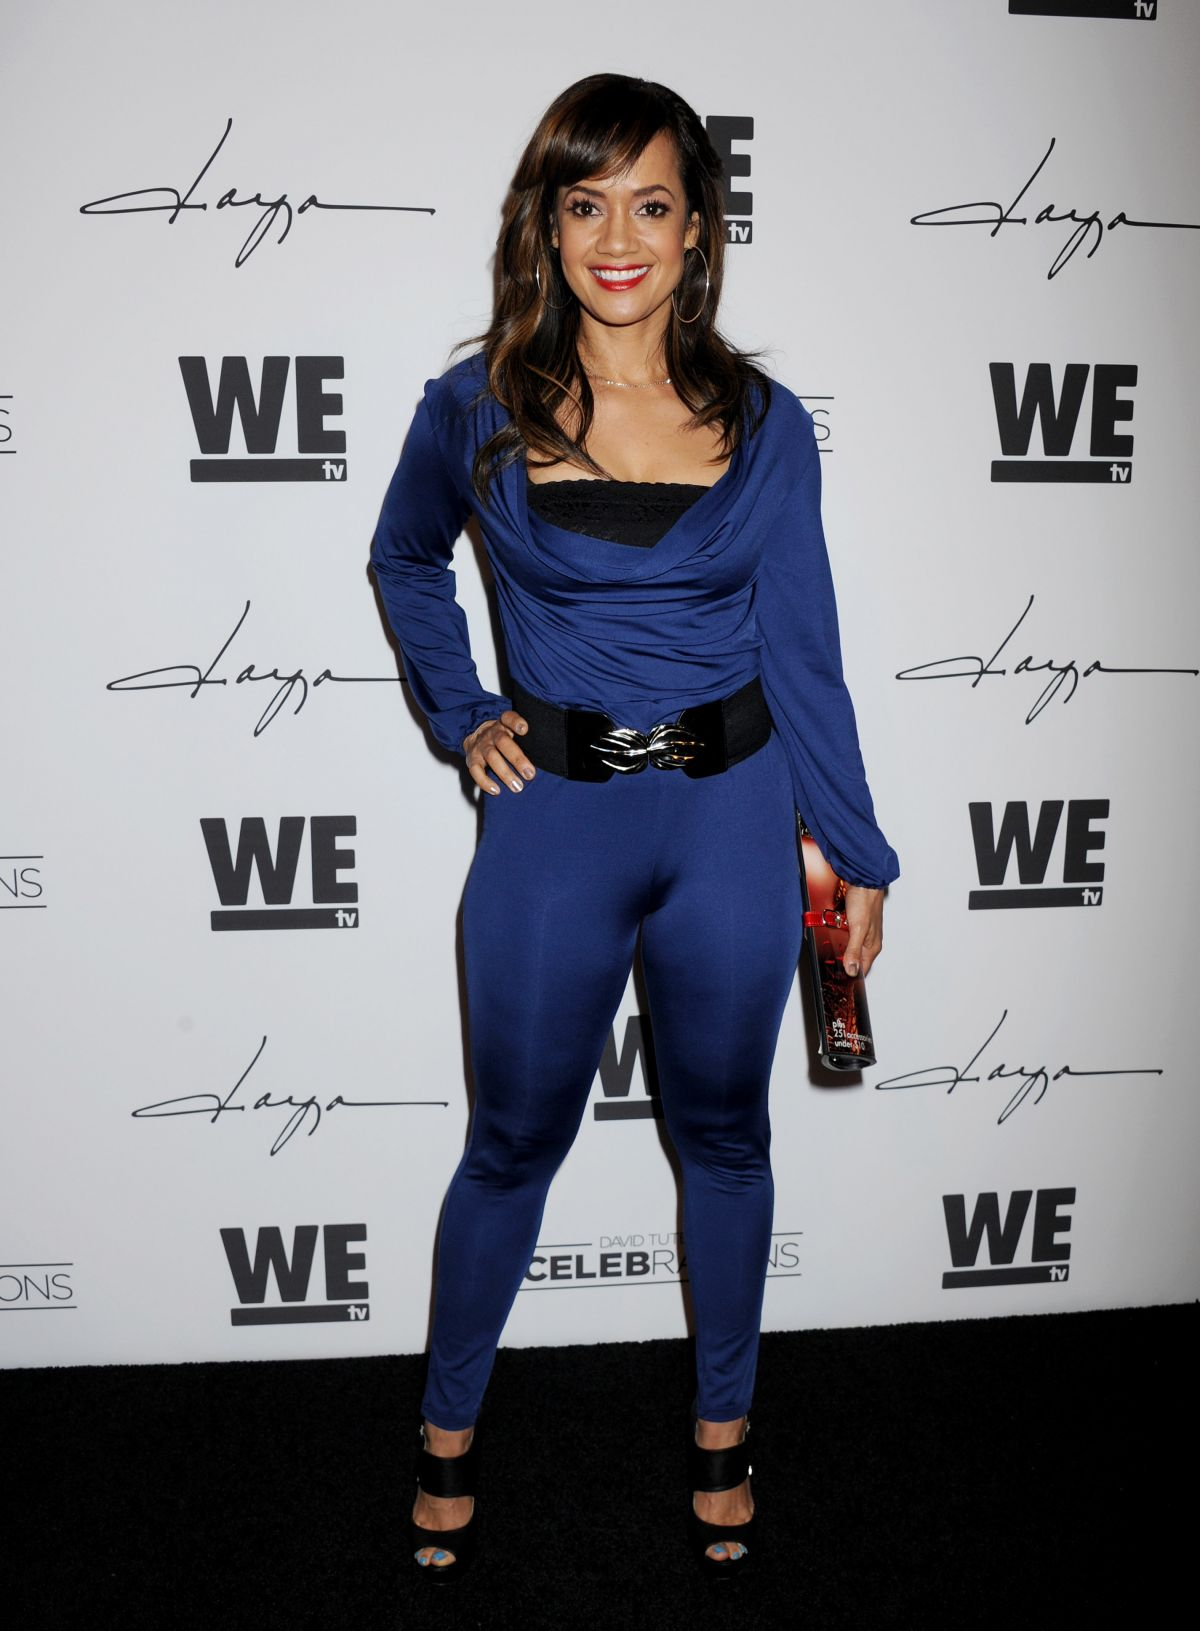 Tammy Townsend At Daya By Zendaya Shoe Line Launch In Los